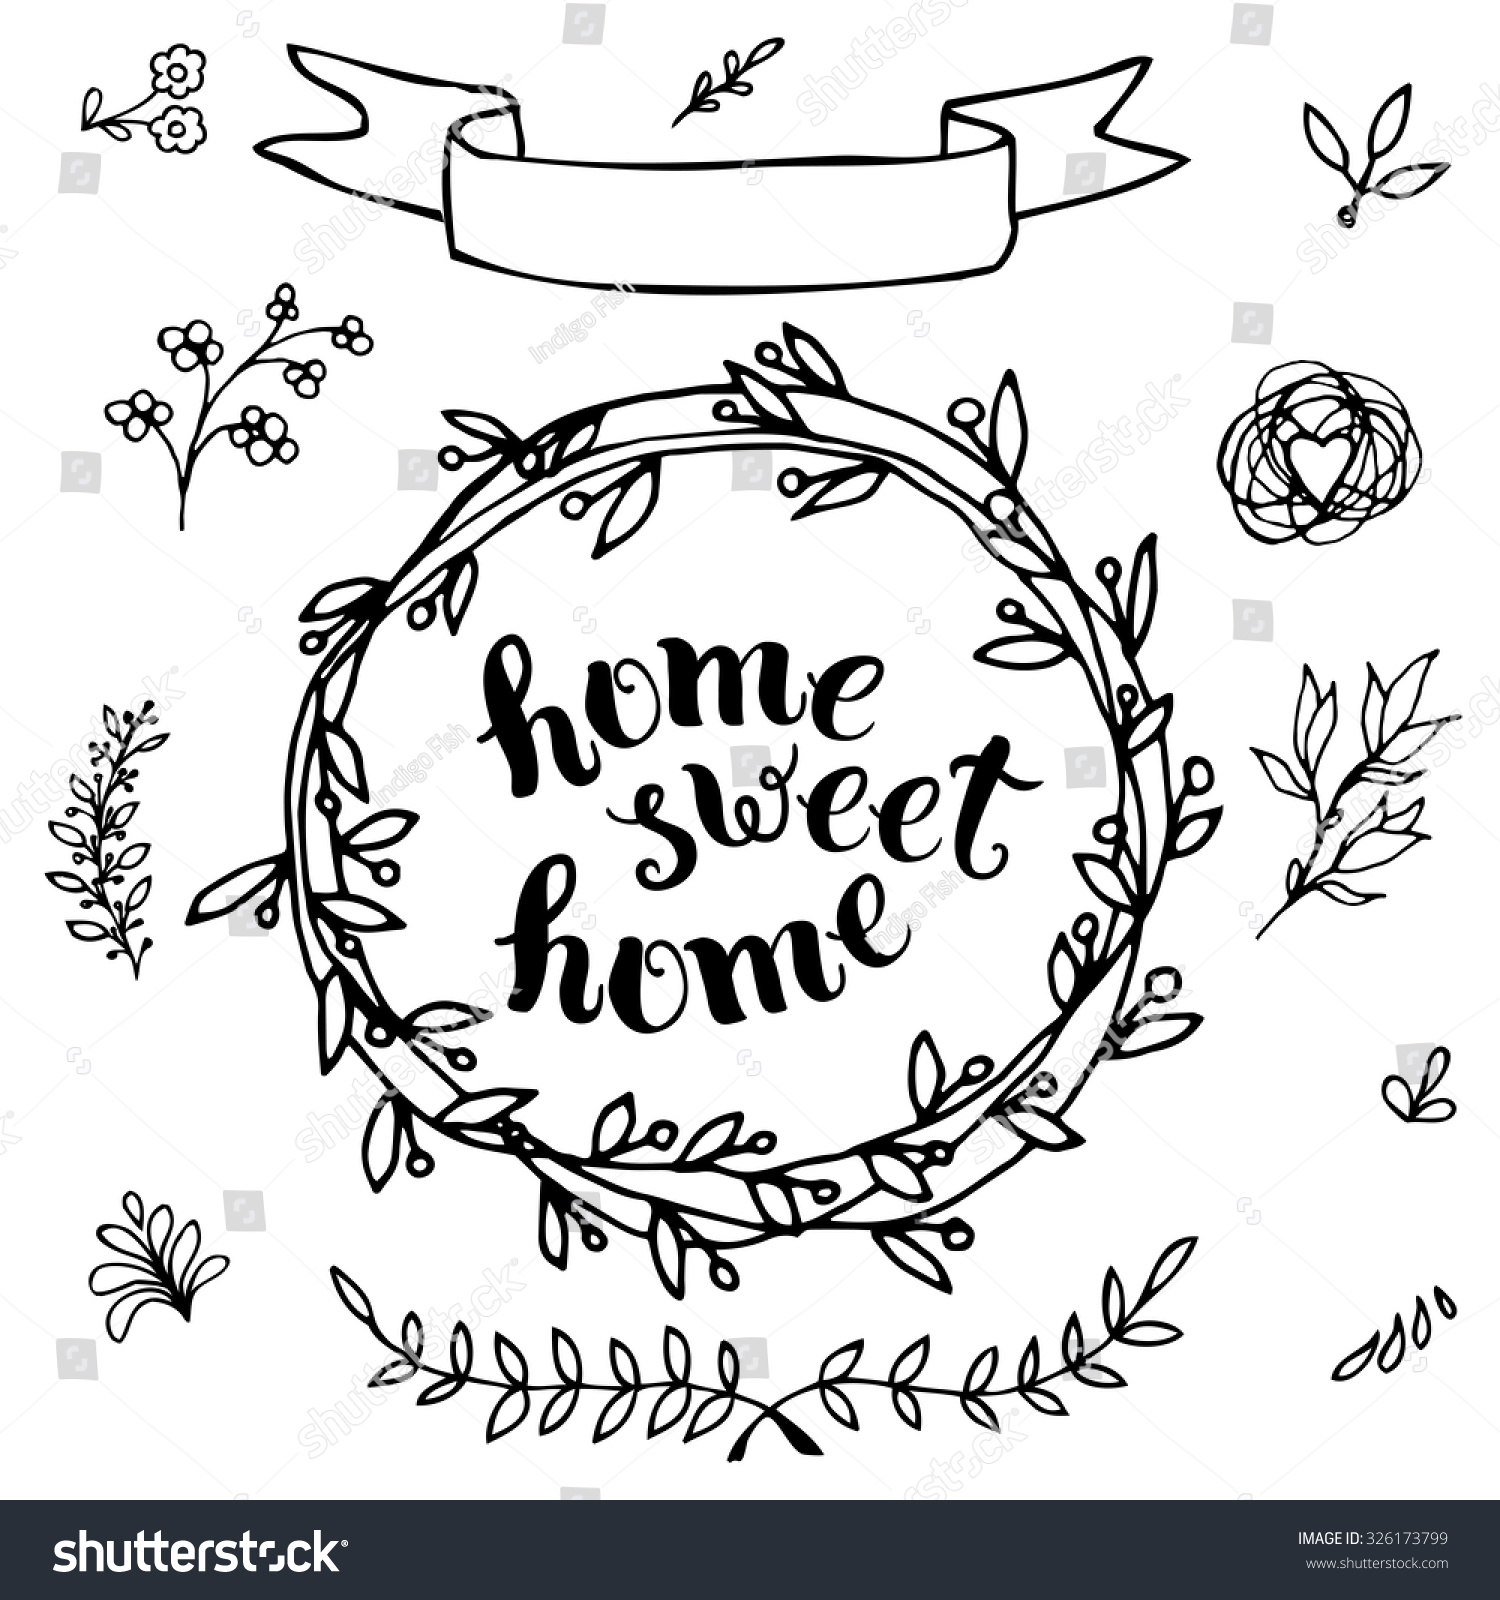 Home Sweet Home Handmade Calligraphy Vector Stock Vector